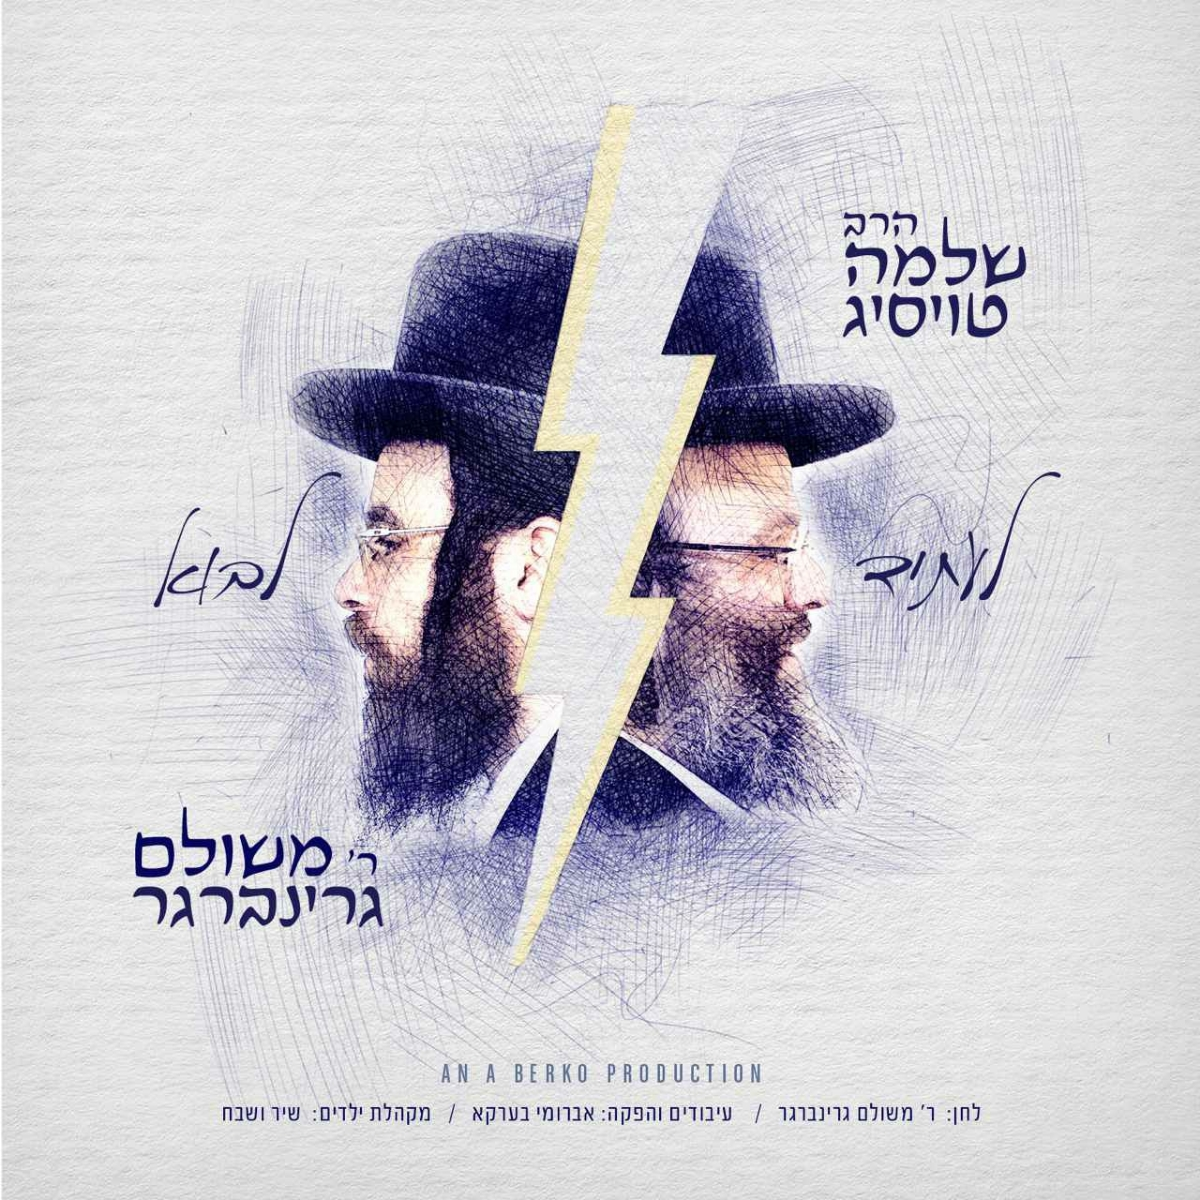 """R' Shloime Taussig & Meshulam Greenberger With A New Single """"L'Usid Lavo"""""""